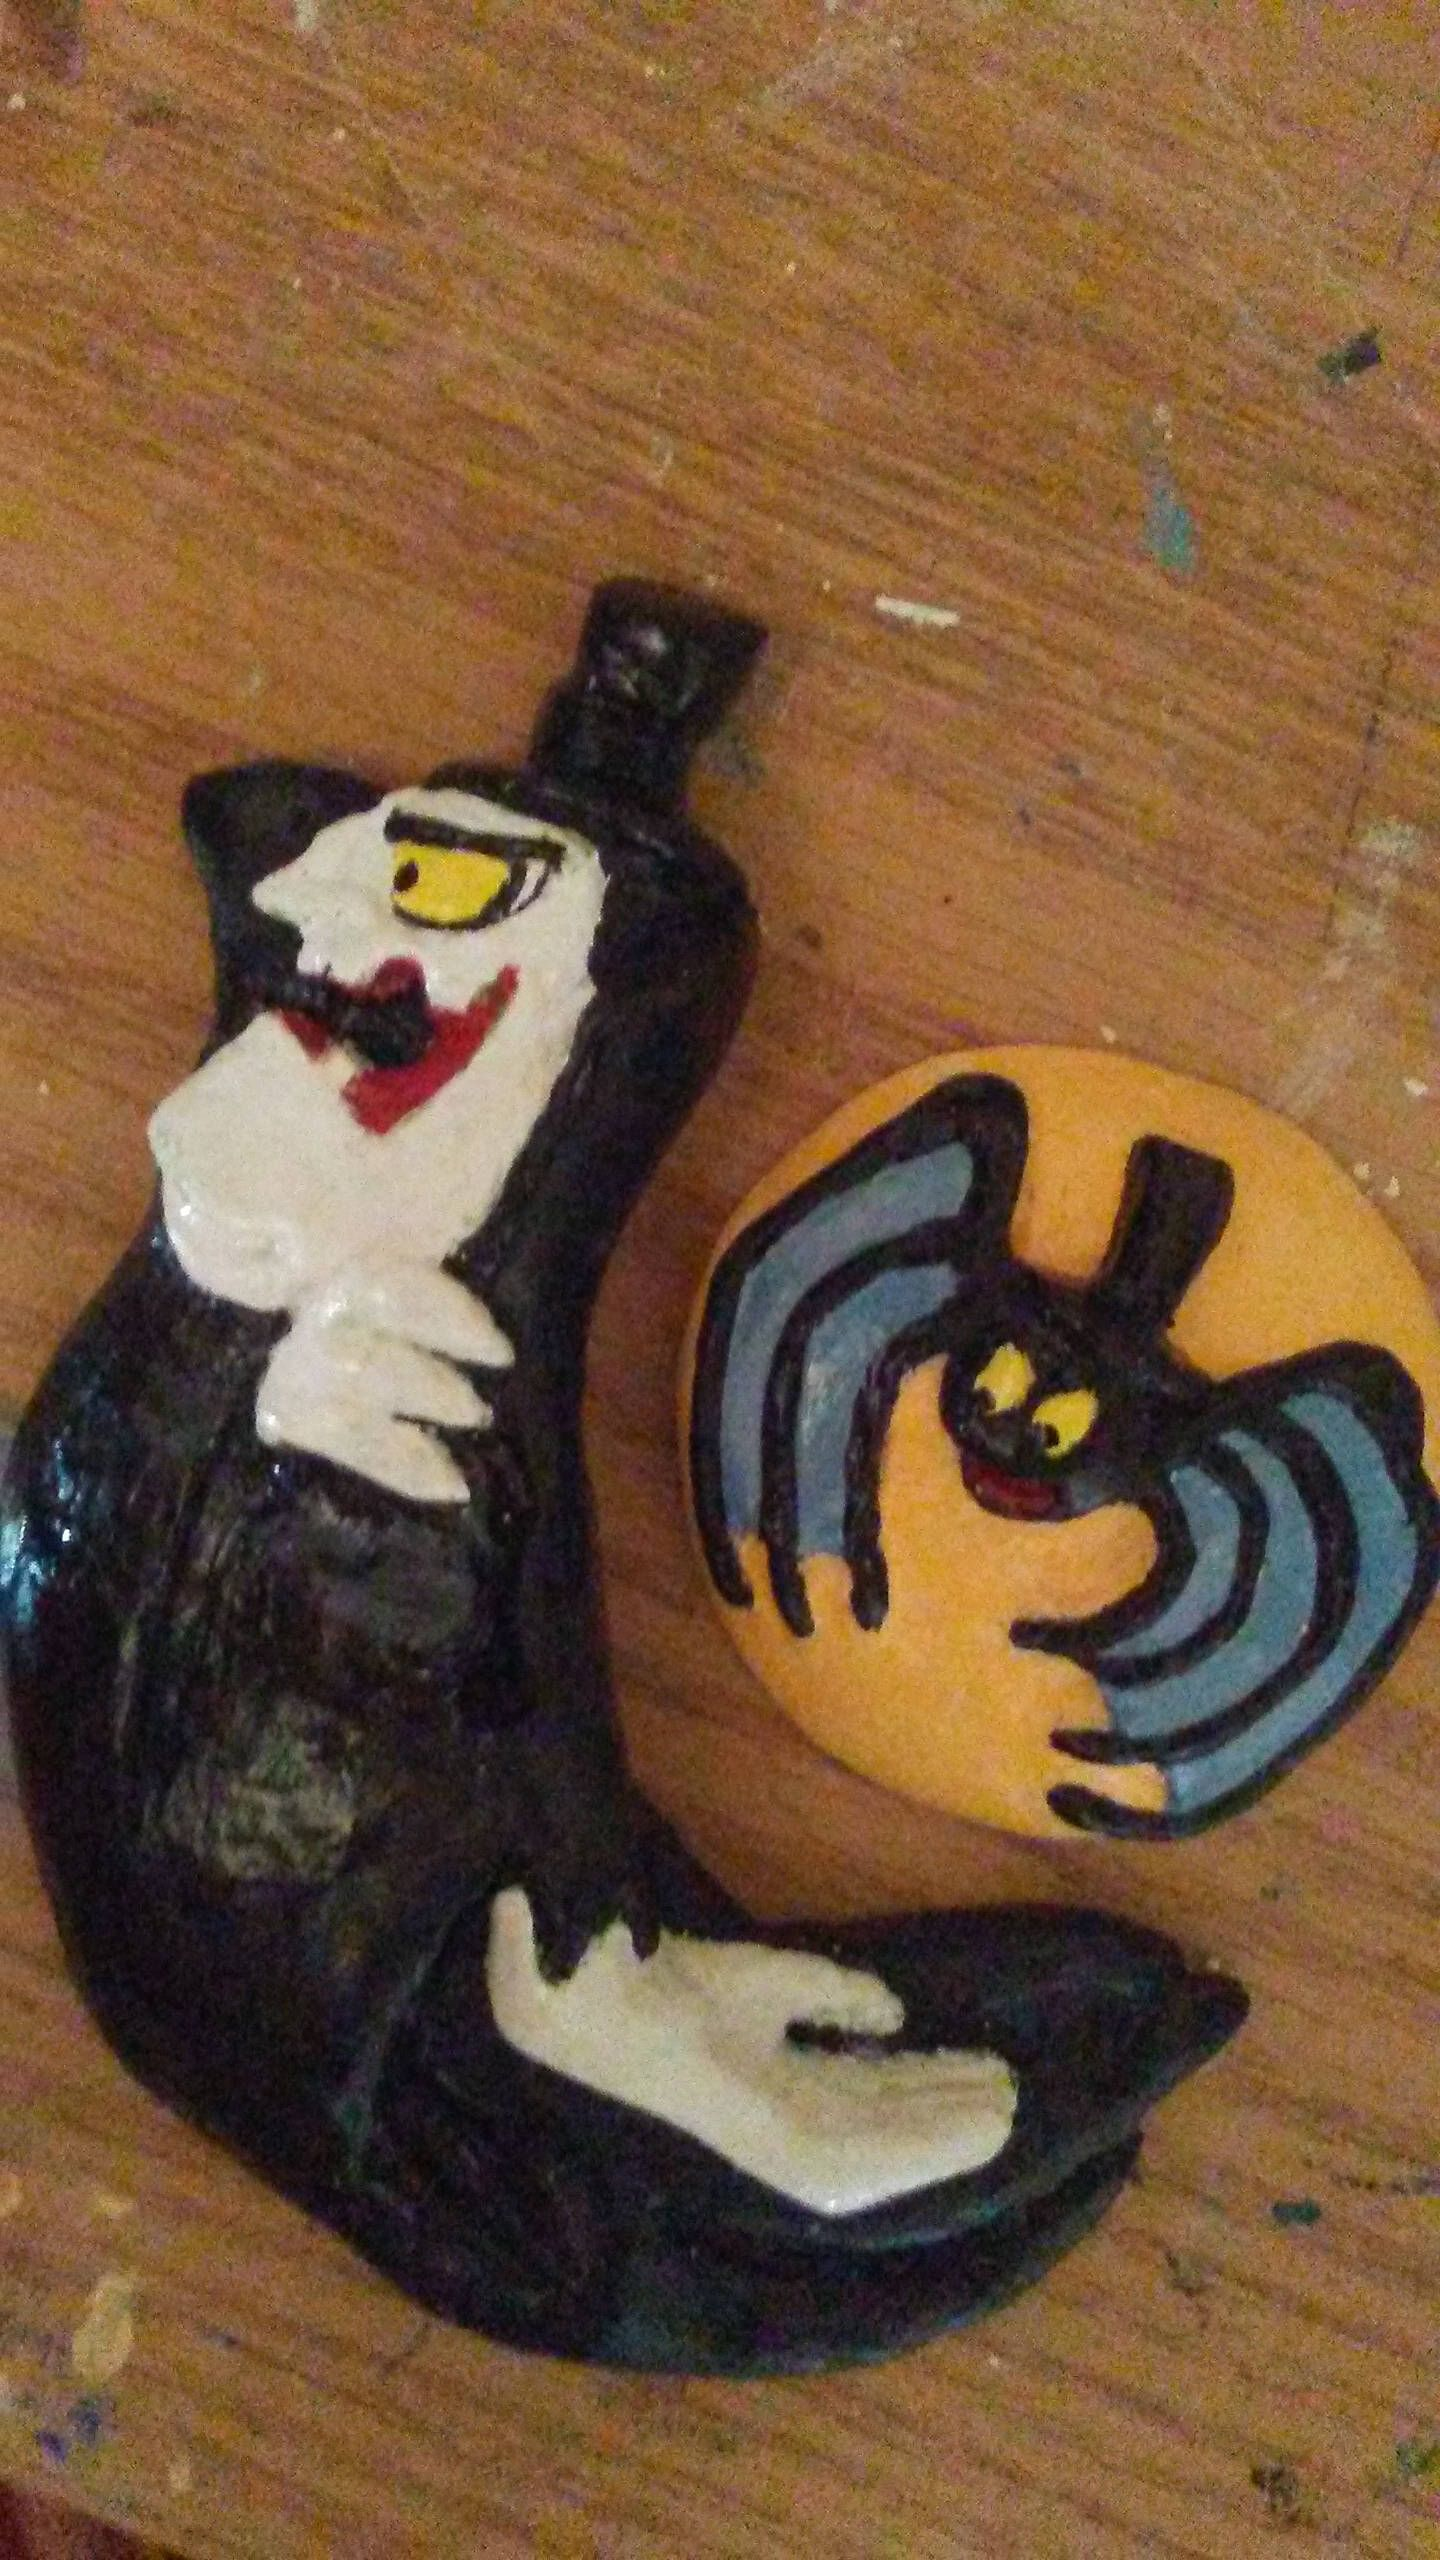 looney tunes halloween decoration bloodcount dracula vampire bat